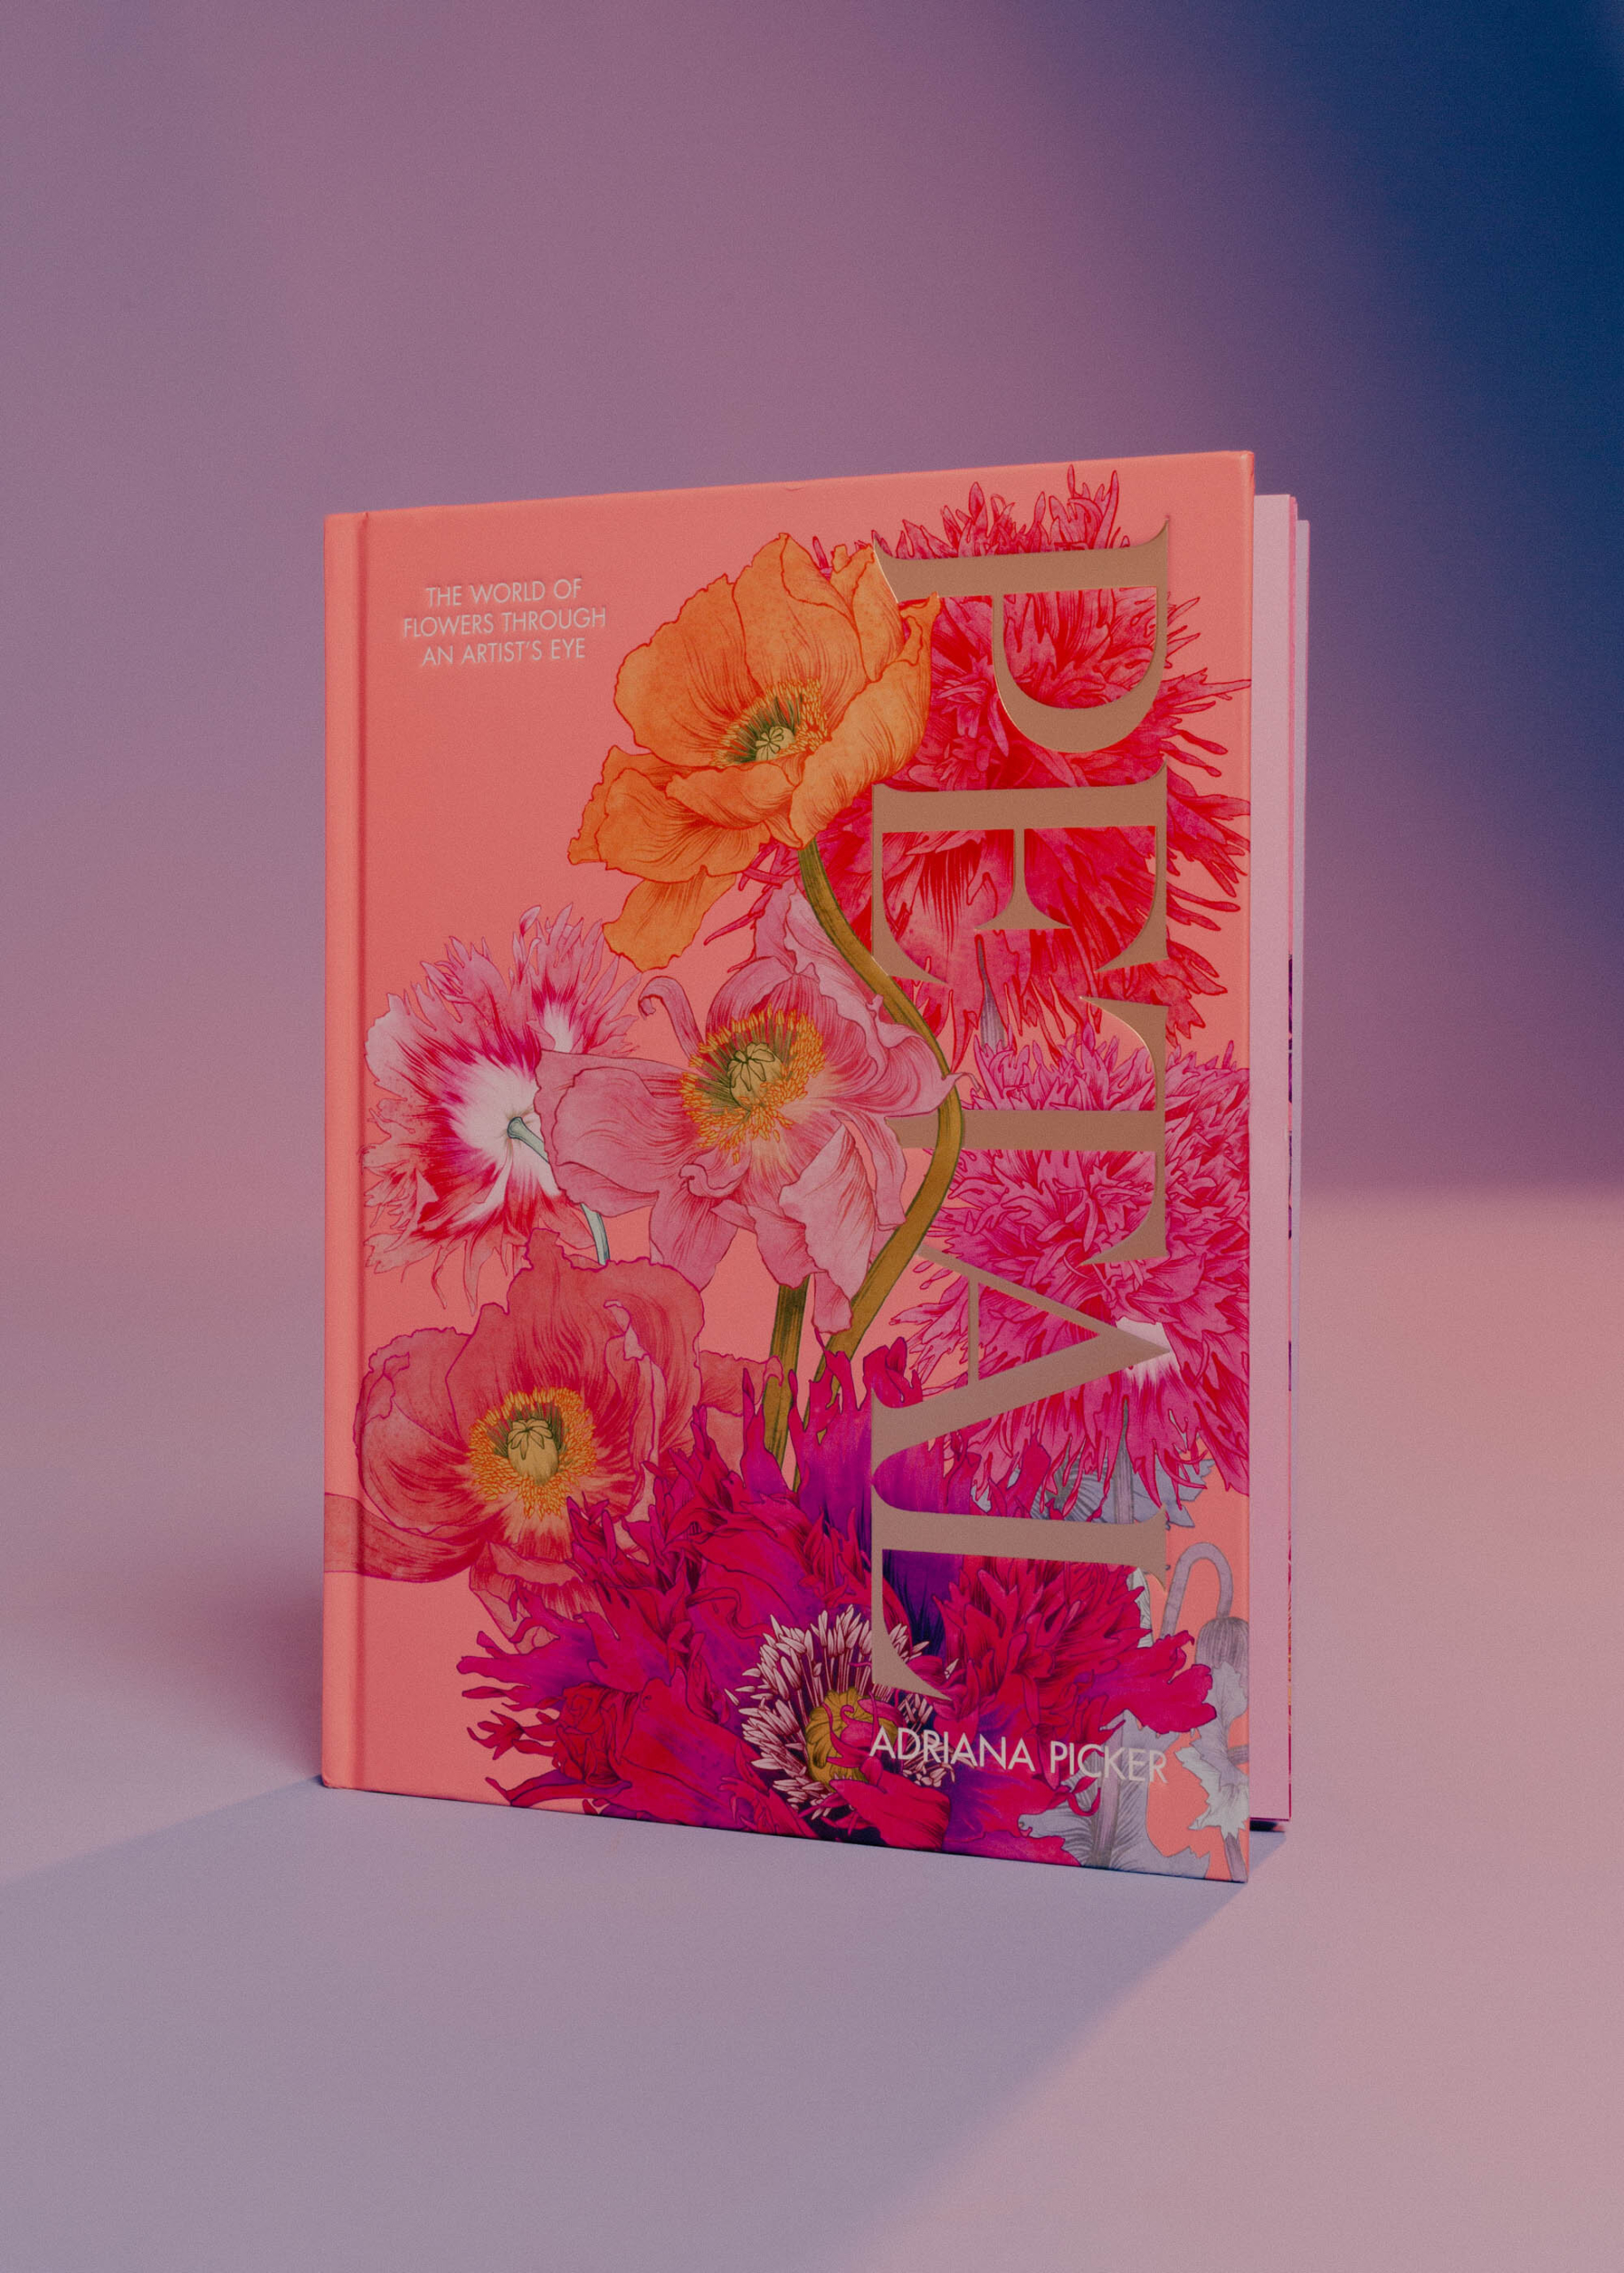 Petal book by Adriana Picker